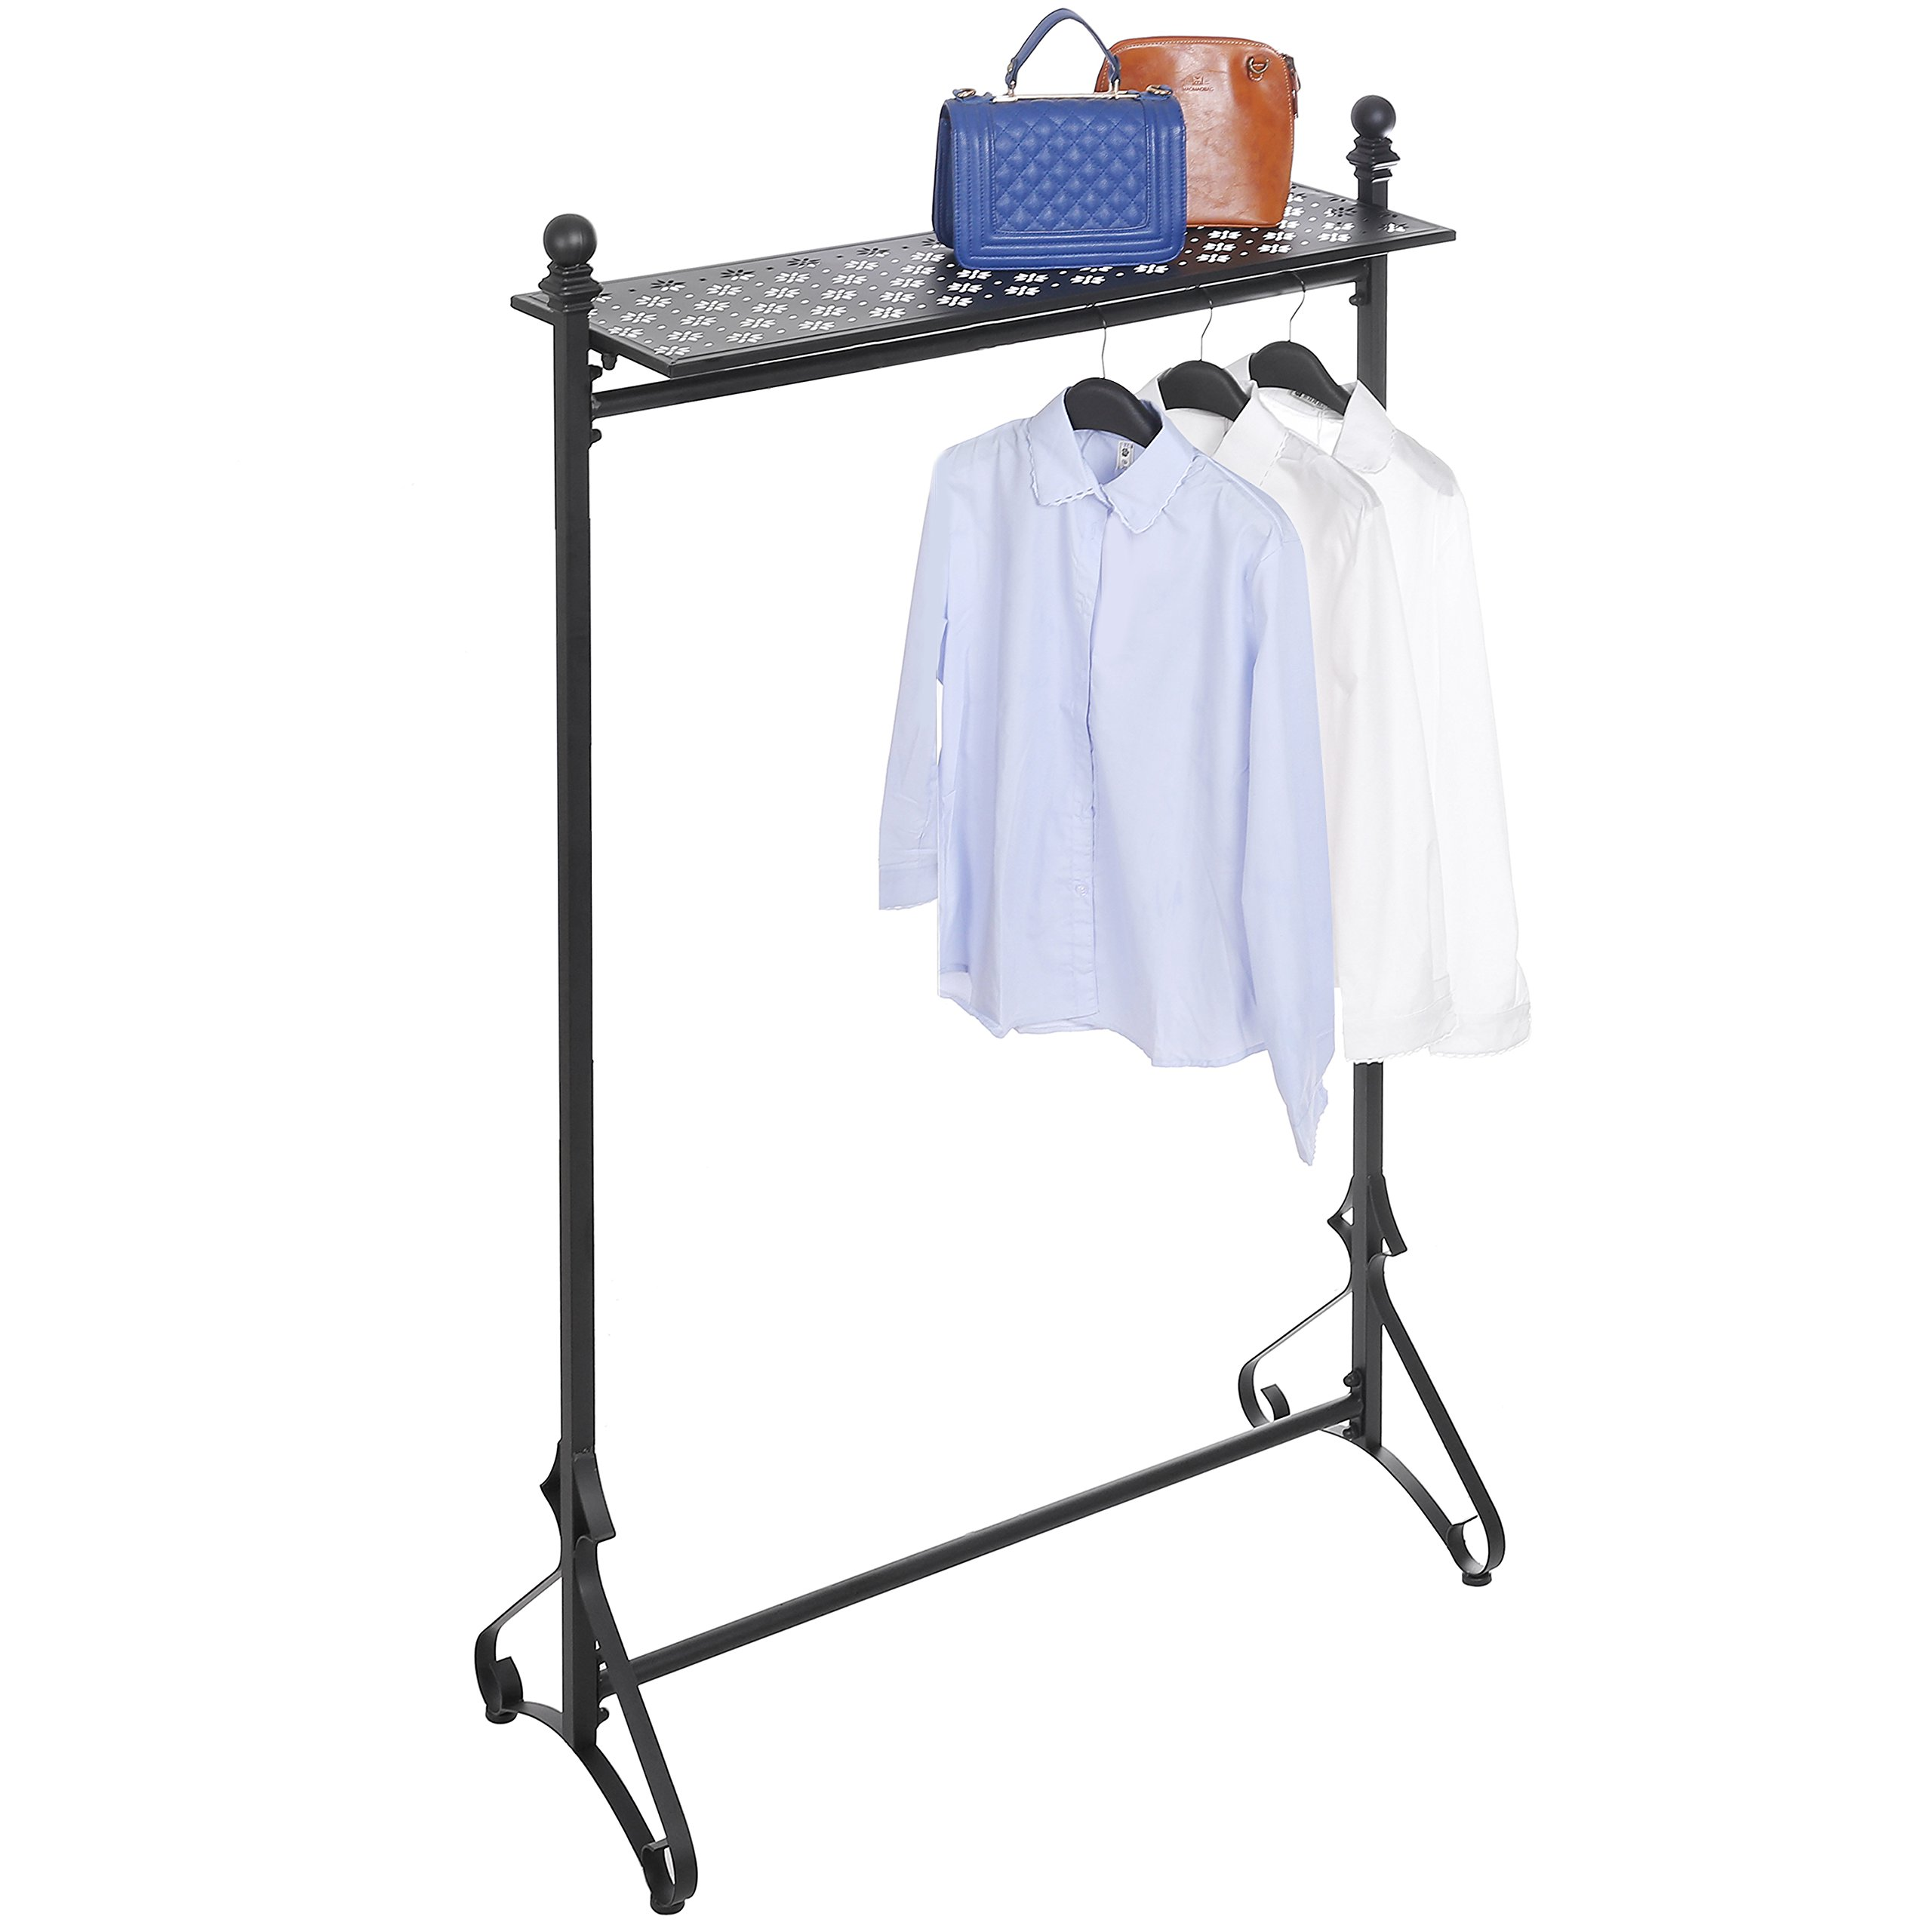 MyGift Deluxe Metal Single Bar Garment Rack with Storage Shelf, Retail Clothing Hanger Display Stand, Black